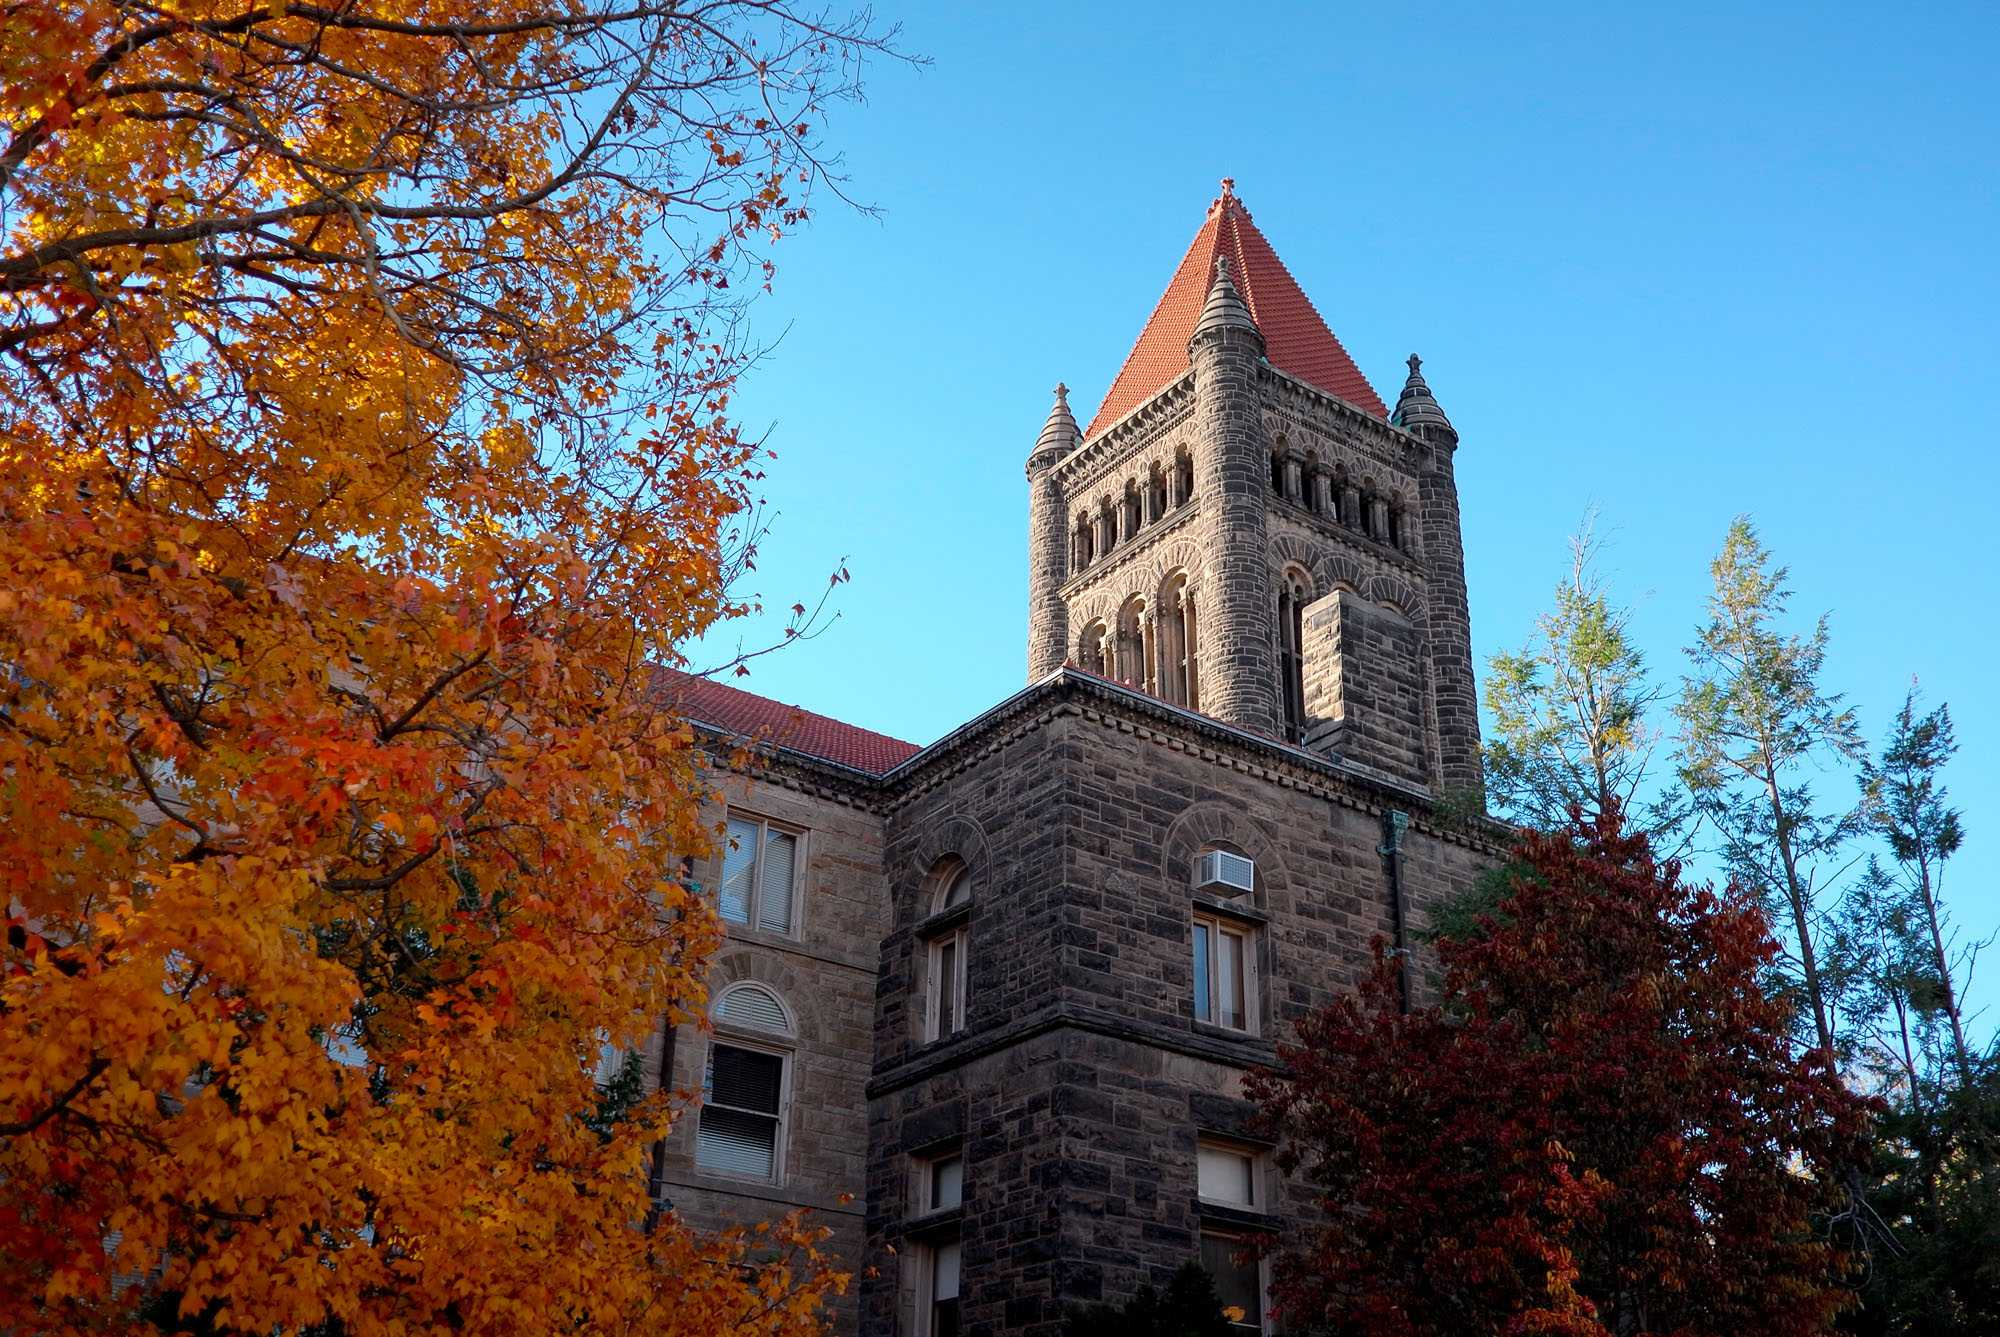 The view outside the Altgeld Hall, where the Mathematics Department is located, on November 6.